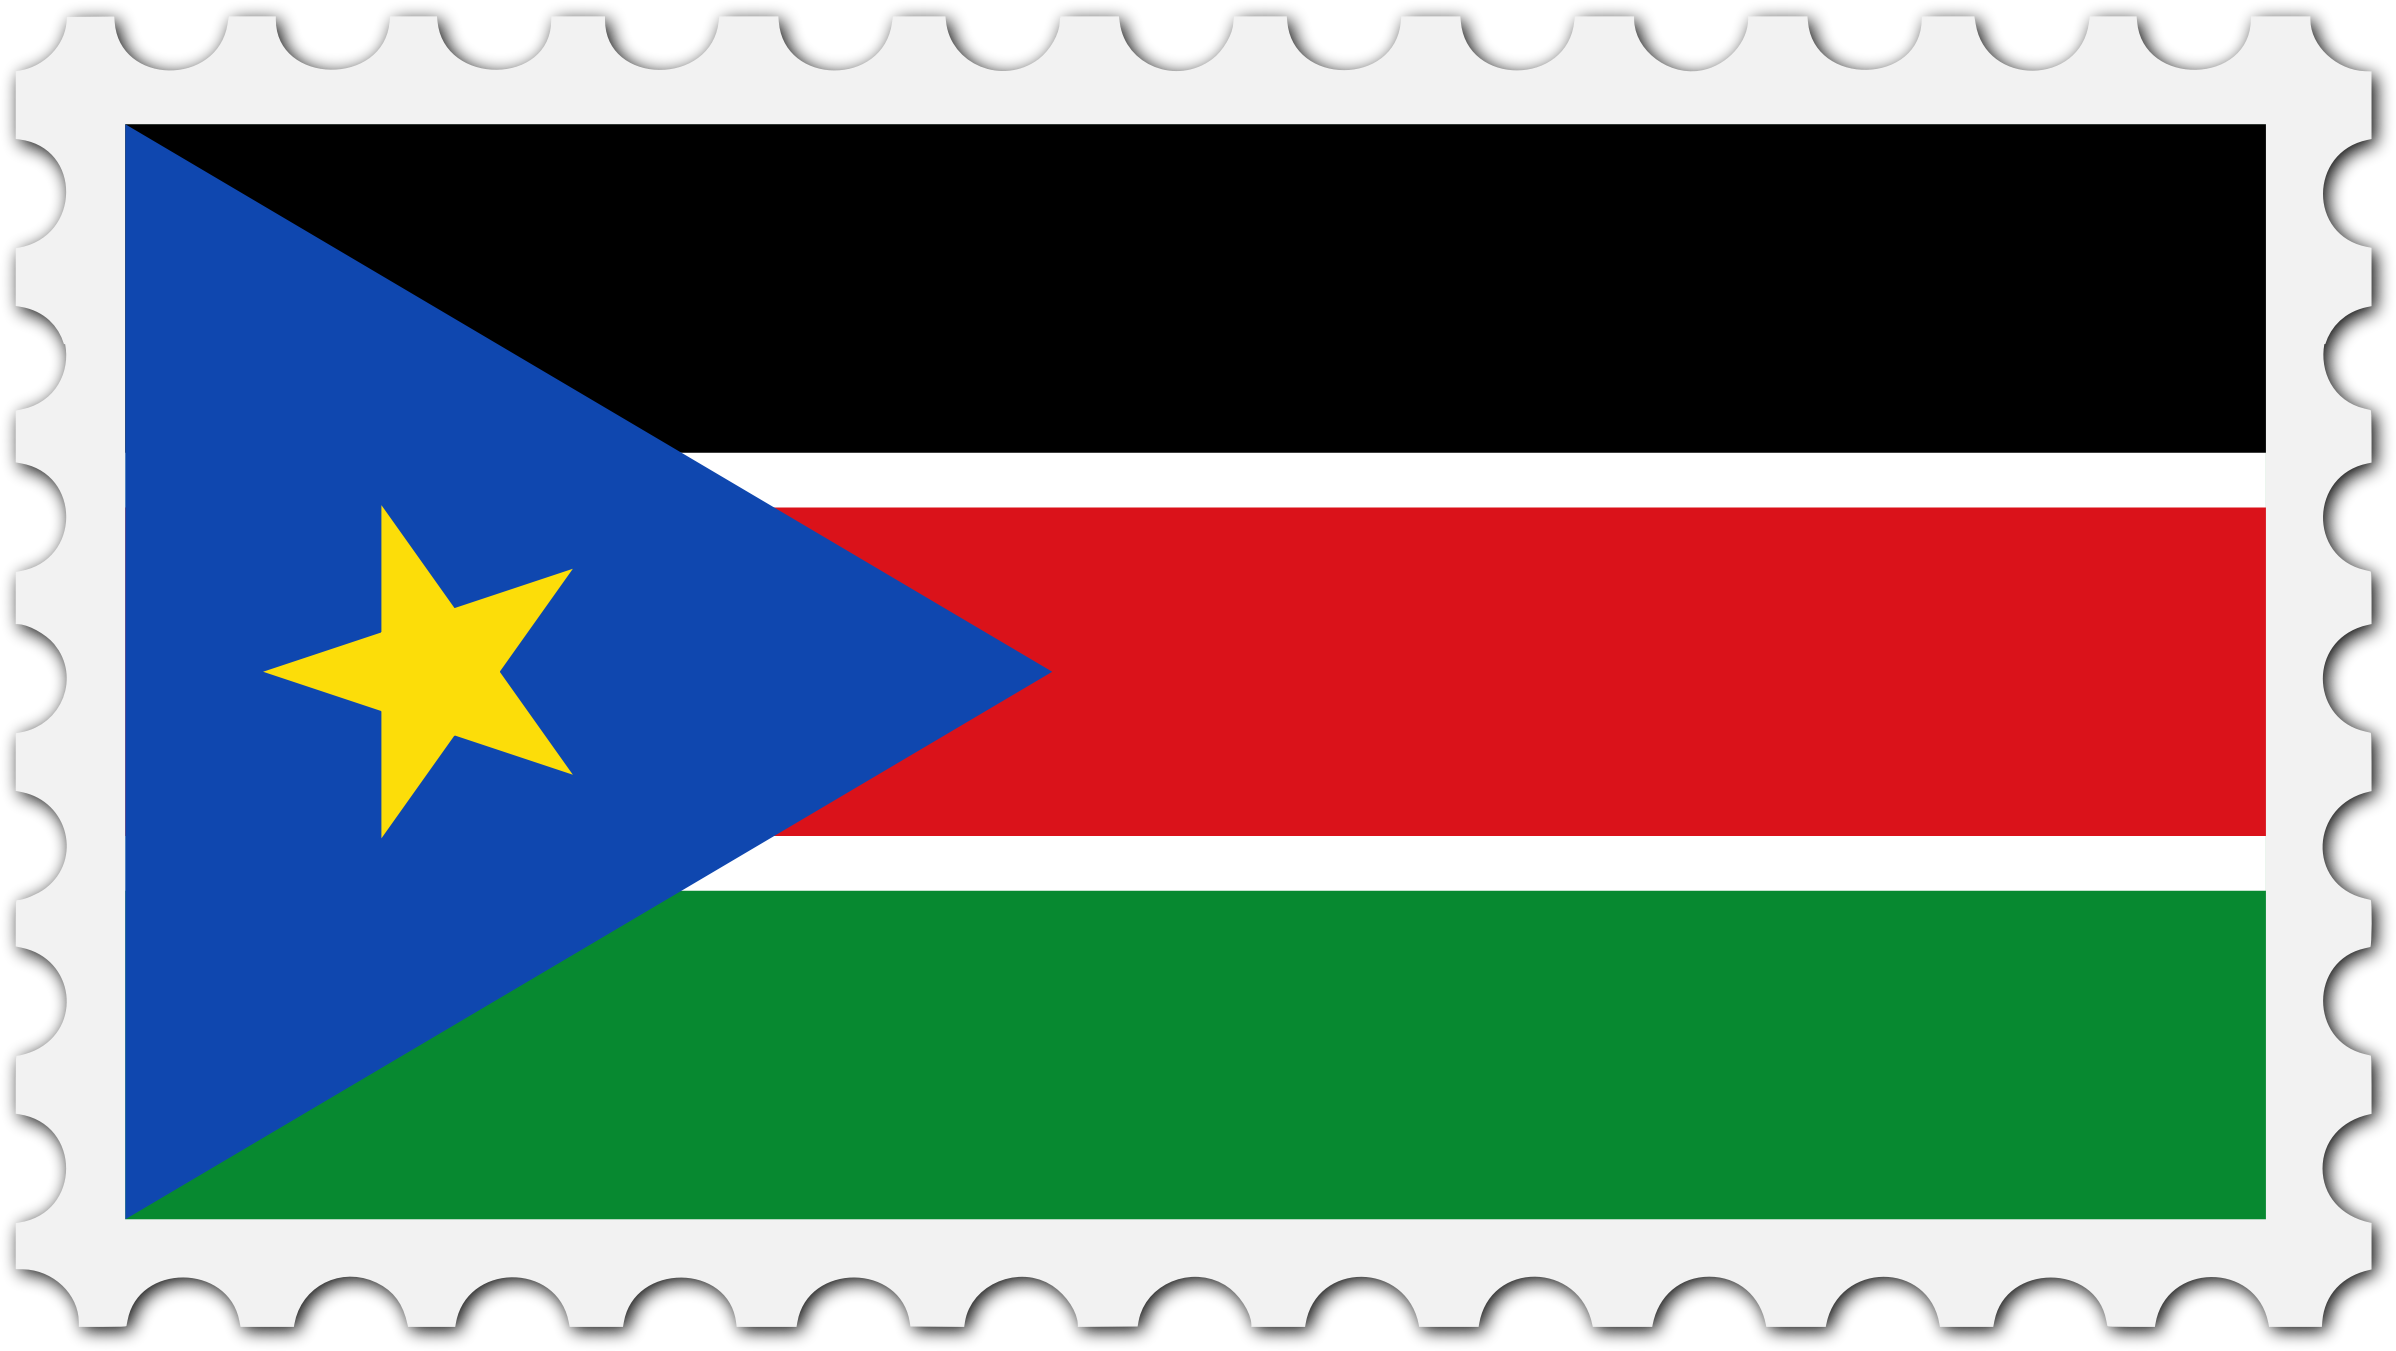 South Sudan flag stamp by Firkin